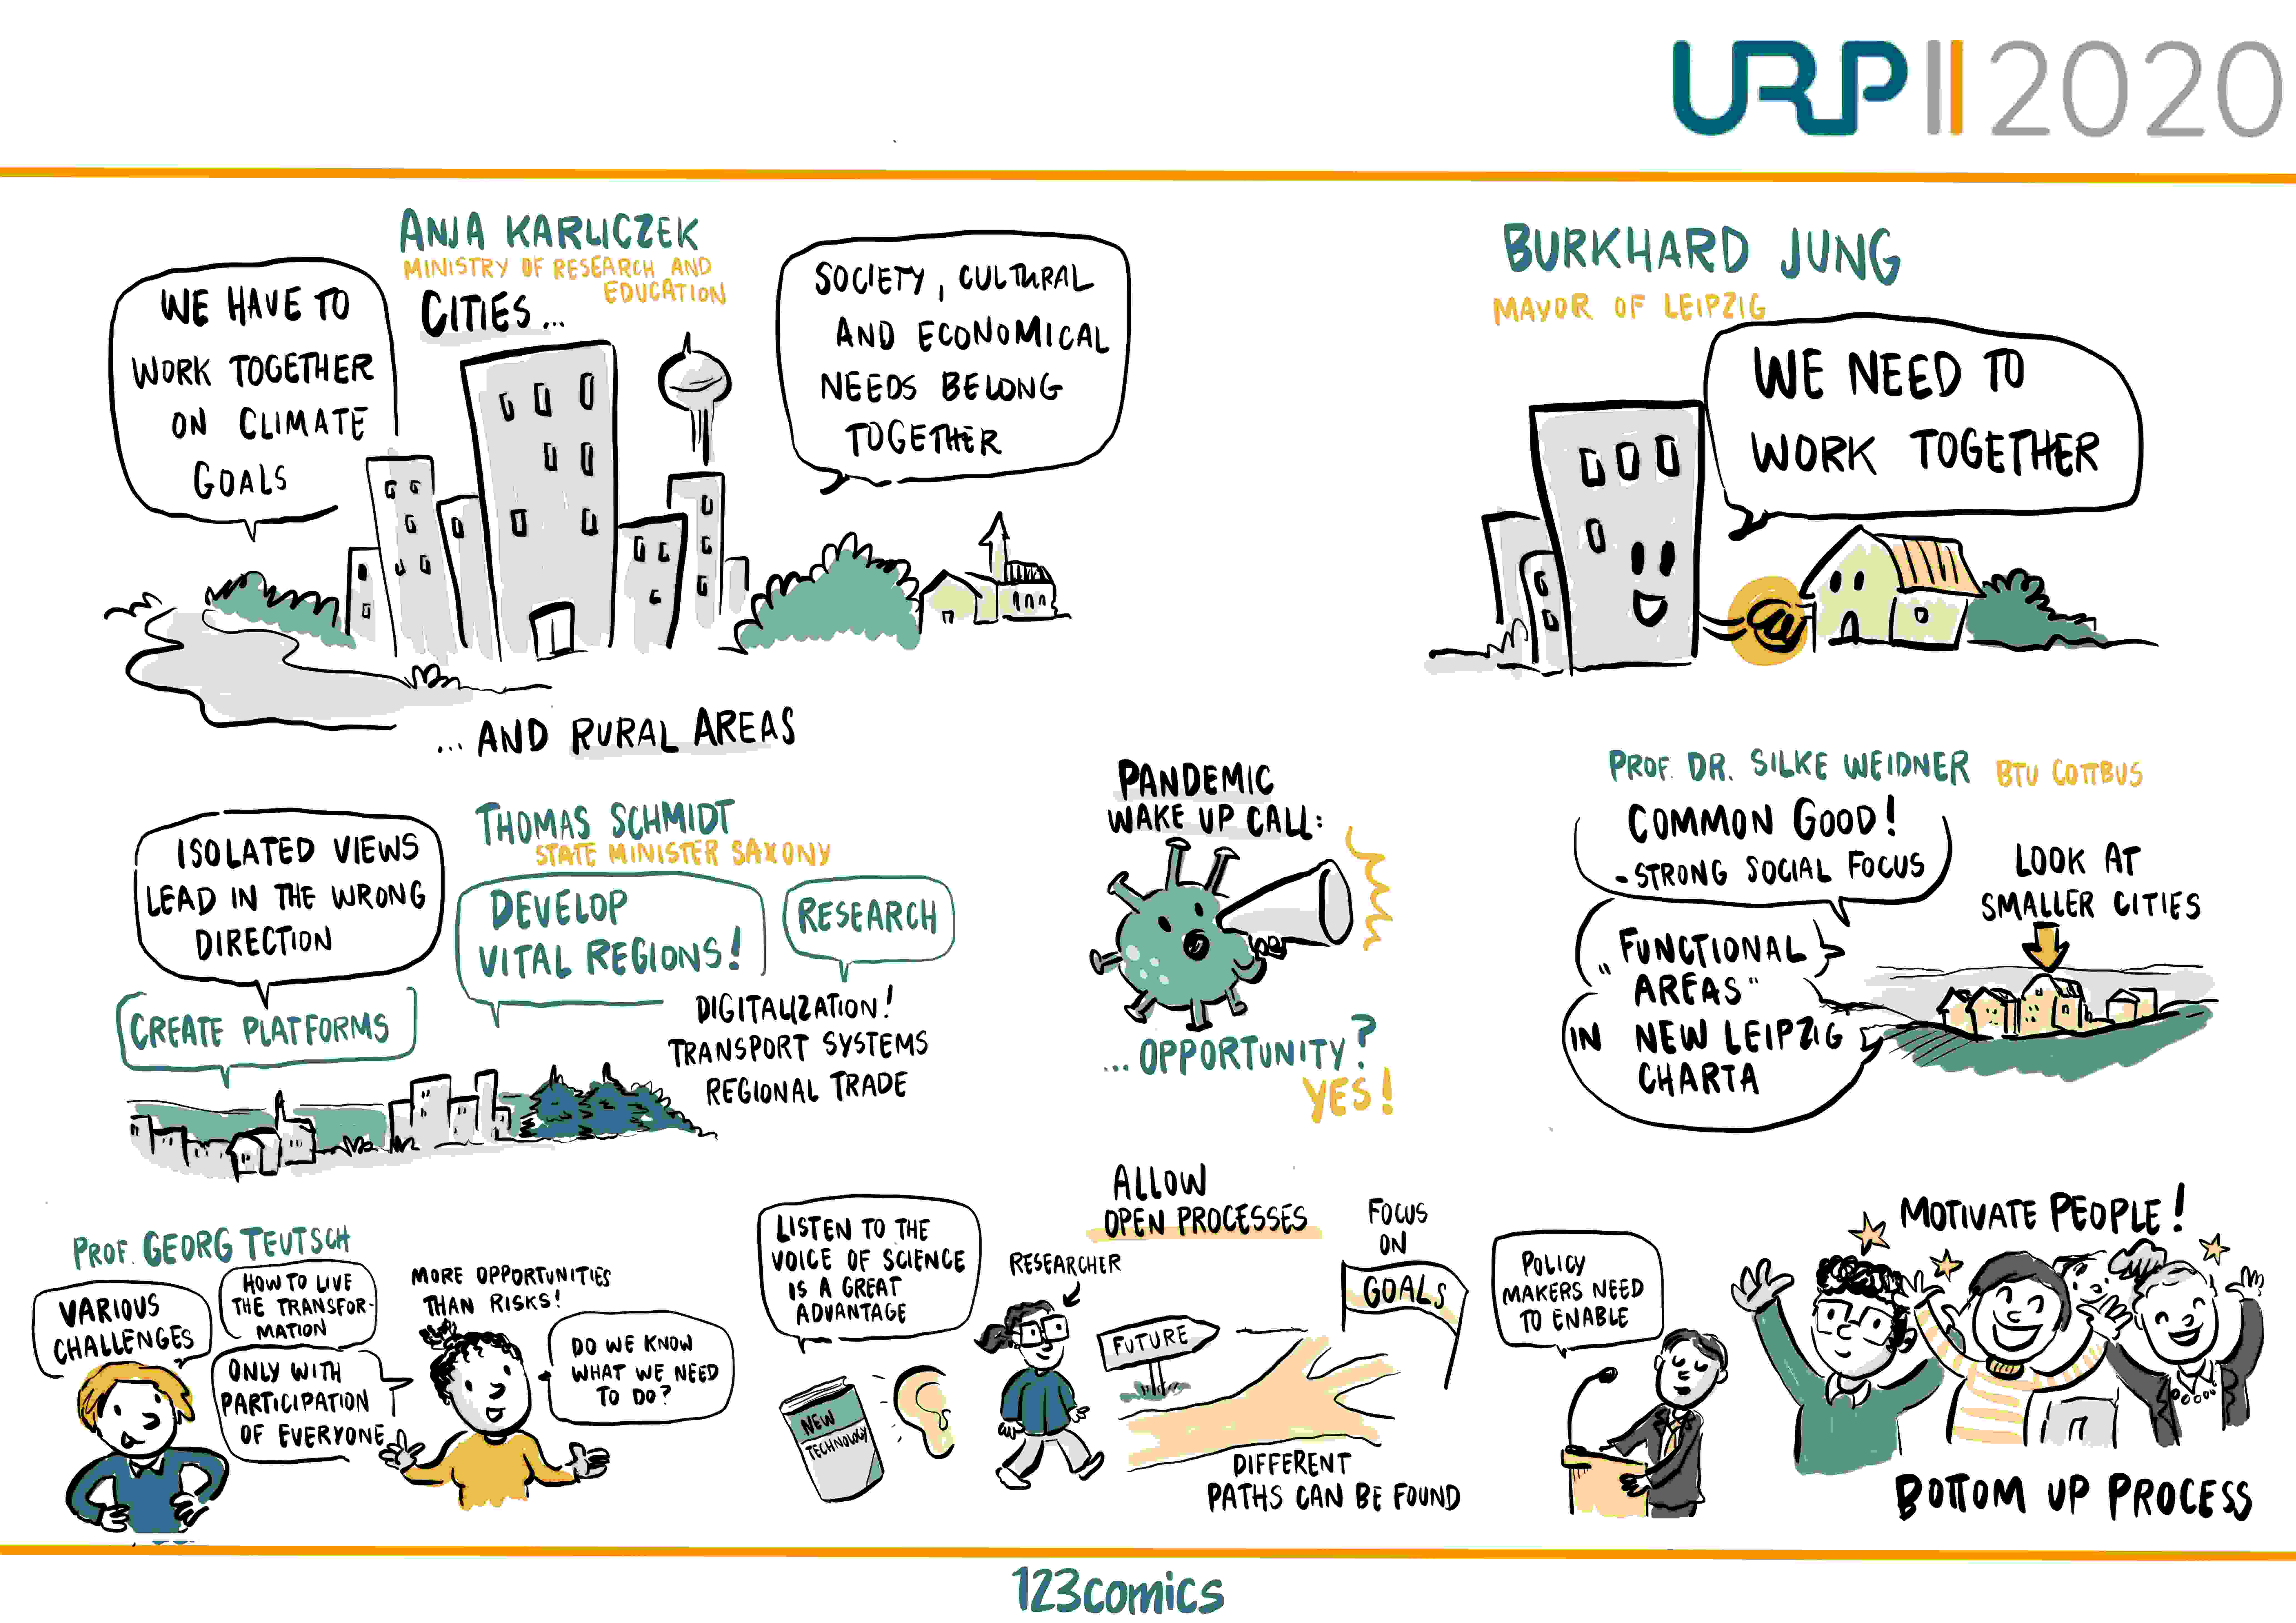 Graphic Recording of the URP2020 Opening Ceremony